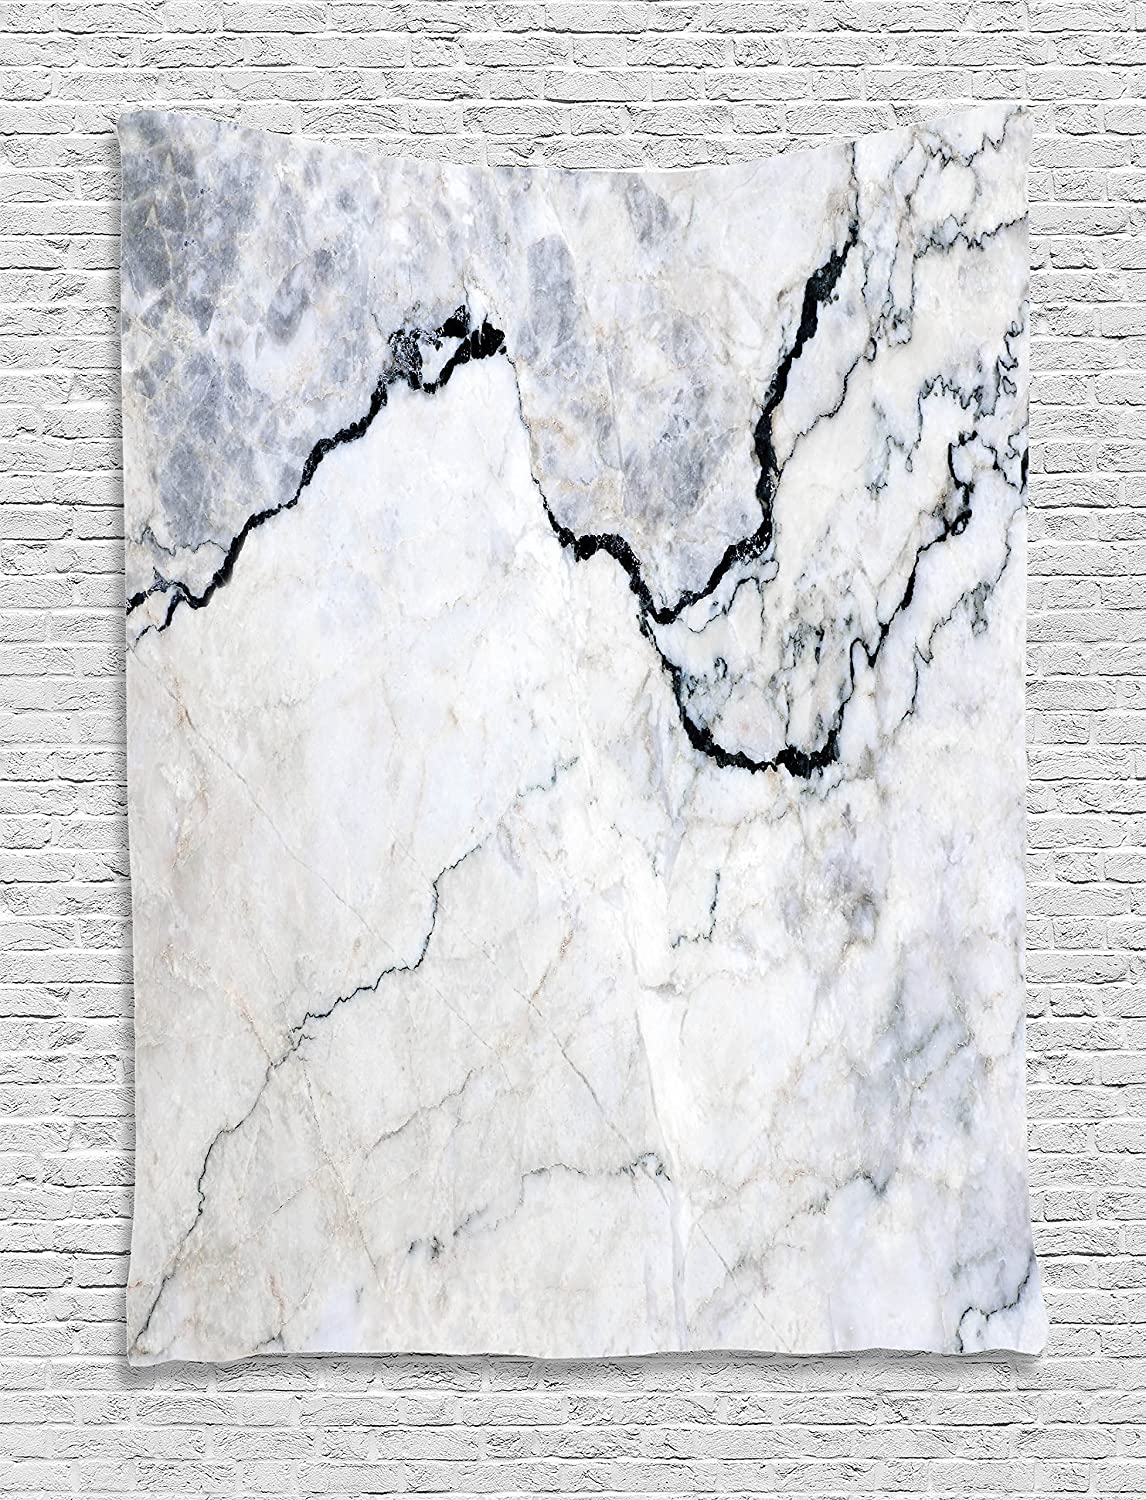 Marble Textured Smooth Details Cracked Dimension Stone Smooth Elegance Image Ambesonne Apartment Decor Tapestry by 60WX80L Inches Wall Hanging for Bedroom Living Room Dorm Grey